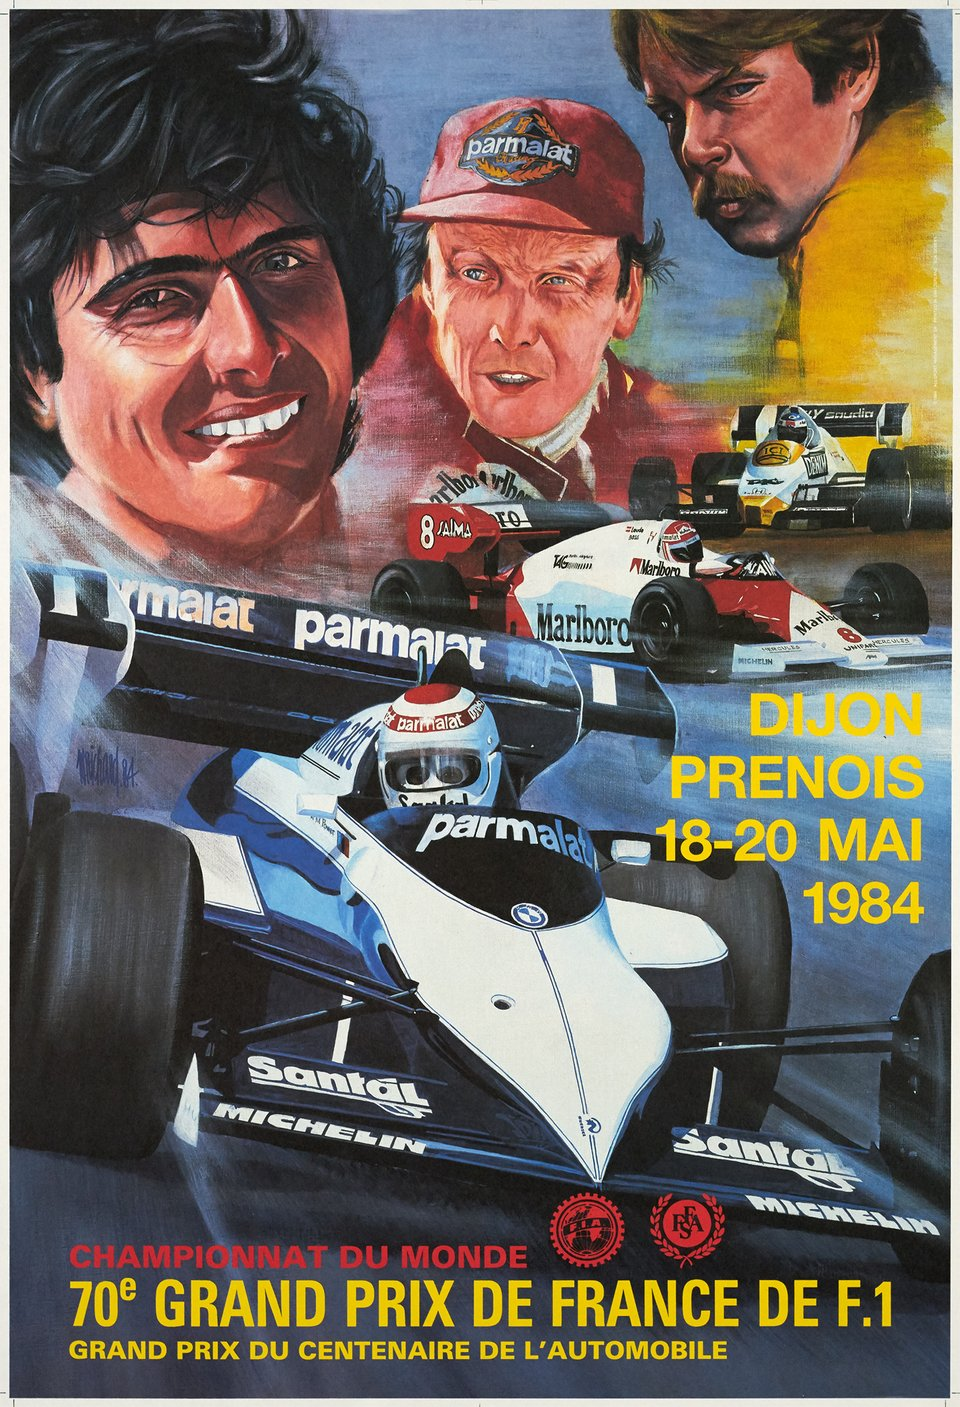 70e Grand Prix de France de F1 – Vintage poster – M. RICHARD – 1984